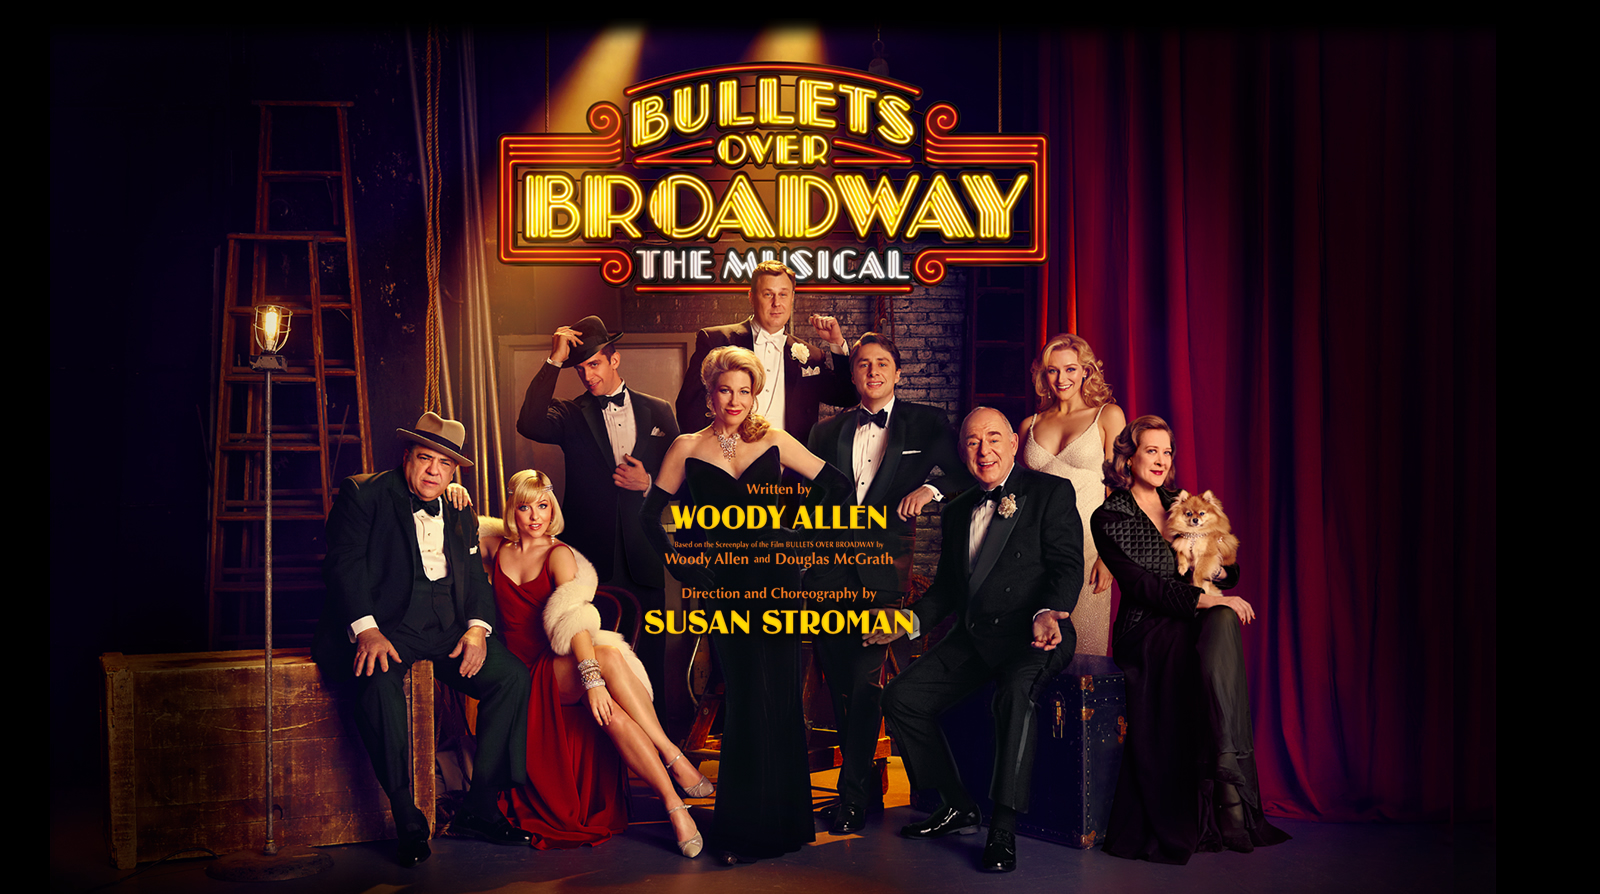 Broadway bullets over broadway to close on august 24 for The broadway